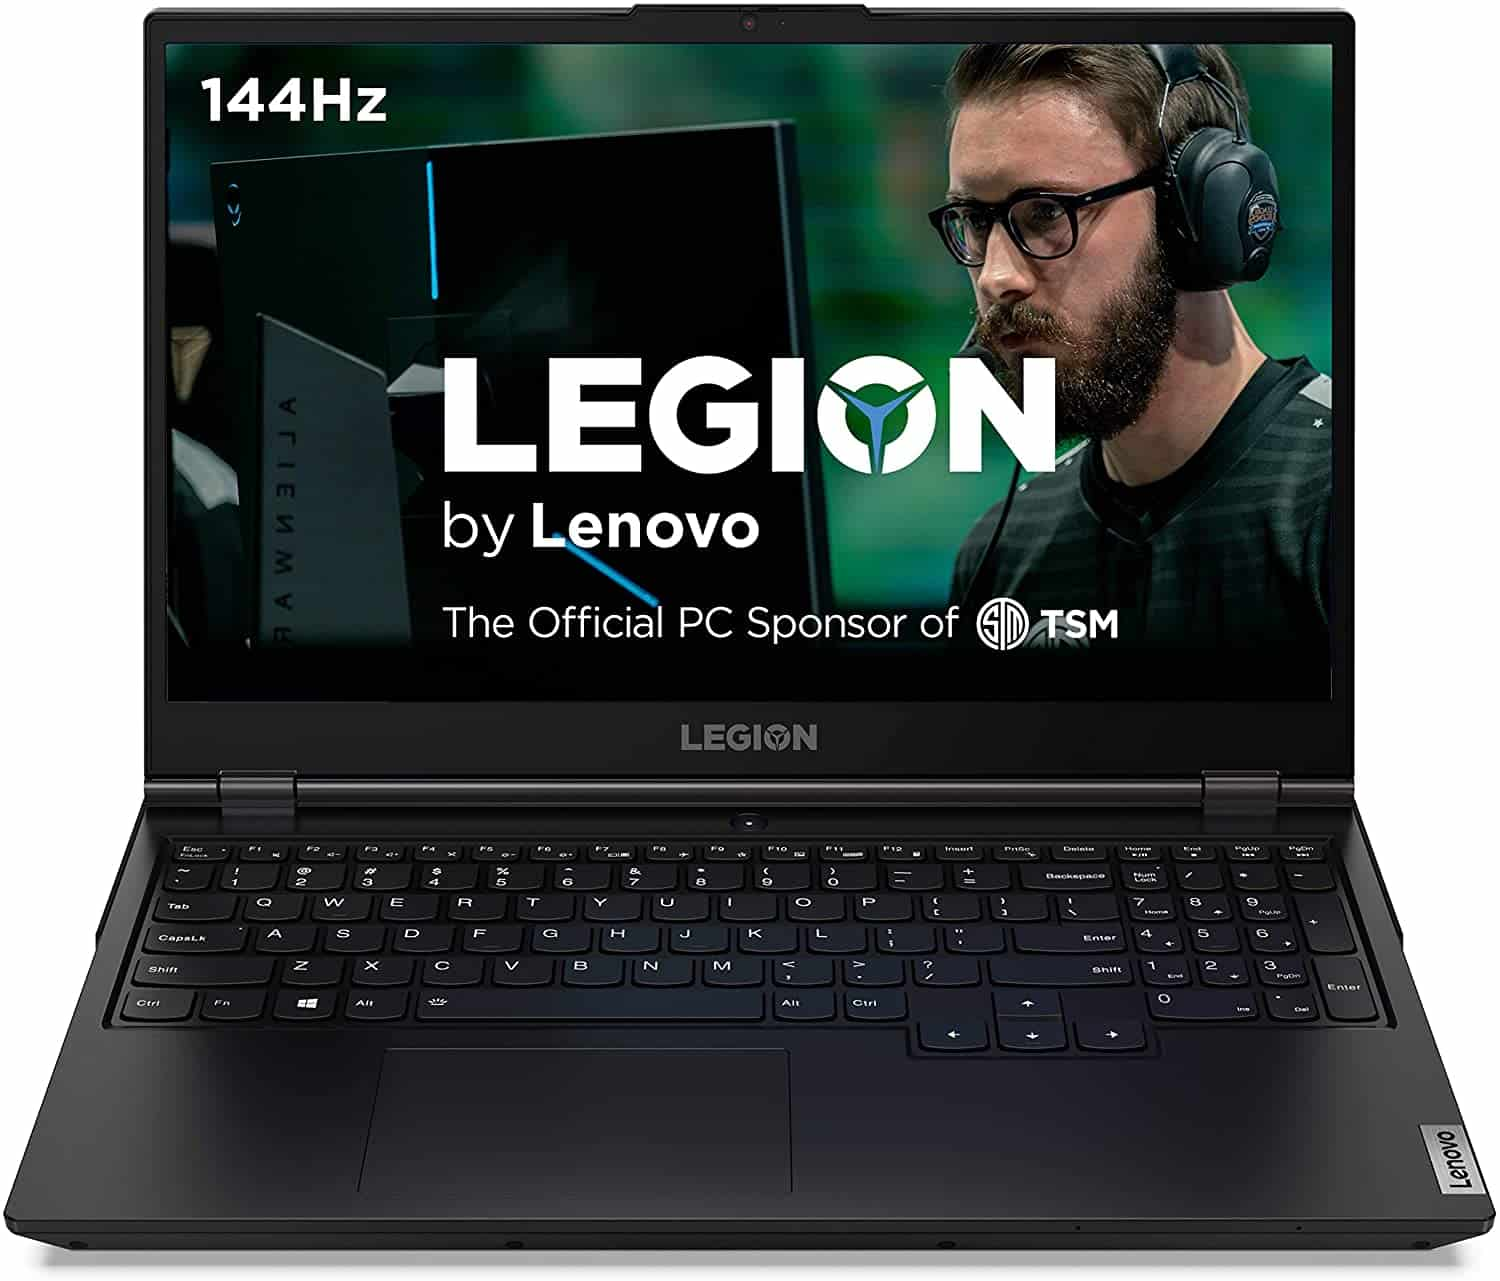 Are alternative Alienware laptops good for gaming? Lenovo Ideapad L340 Gaming Laptop is the best alternative Alienware laptops good for gaming, Is Lenovo IdeaPad L340 a gaming laptop?